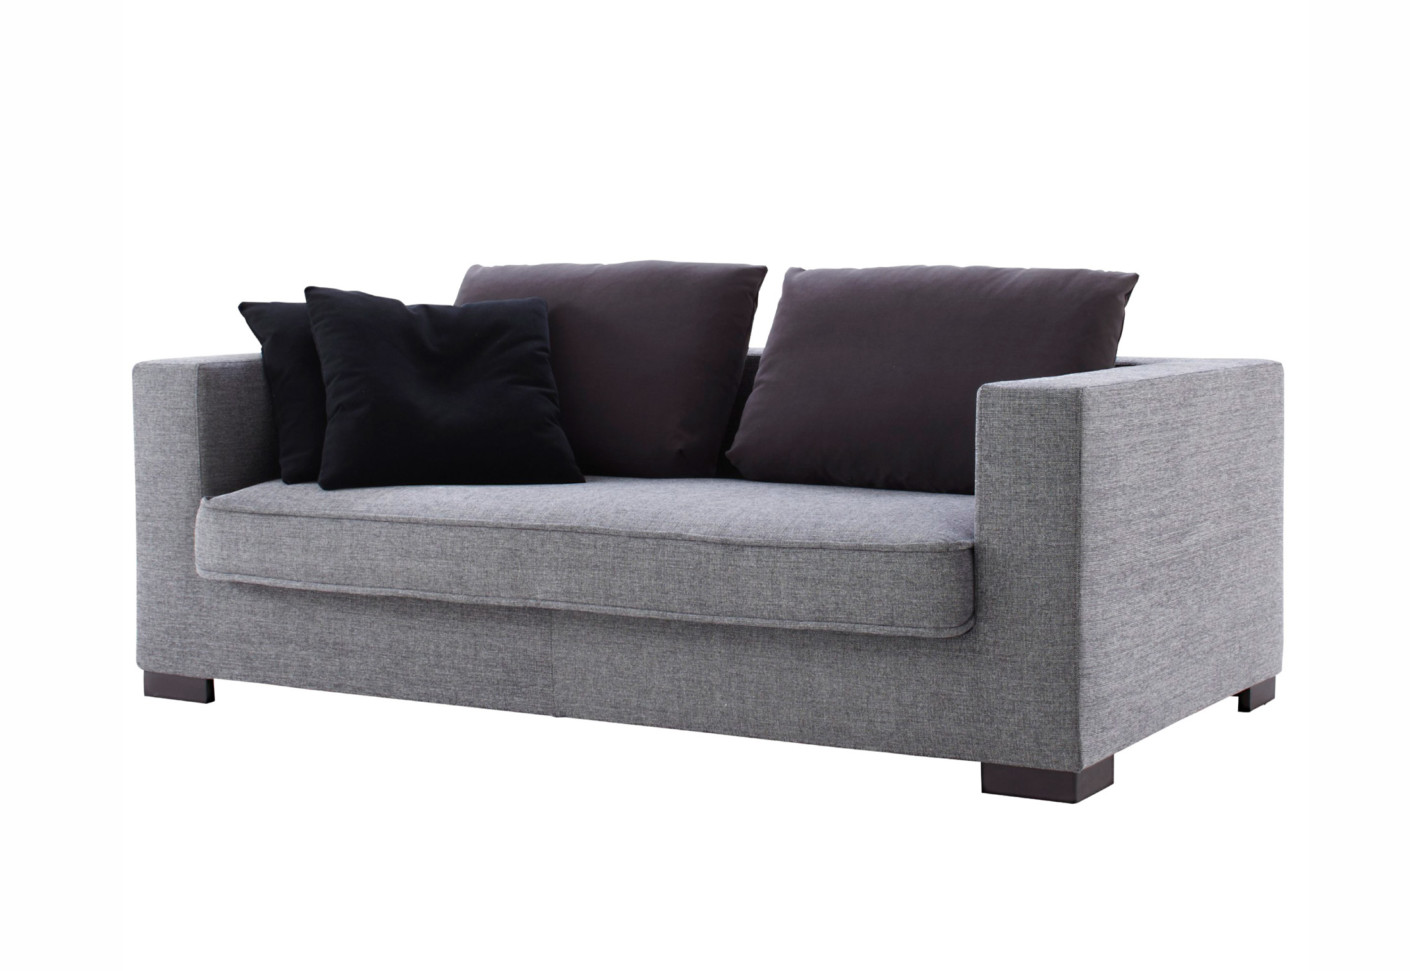 rive gauche schlafsofa von ligne roset stylepark. Black Bedroom Furniture Sets. Home Design Ideas